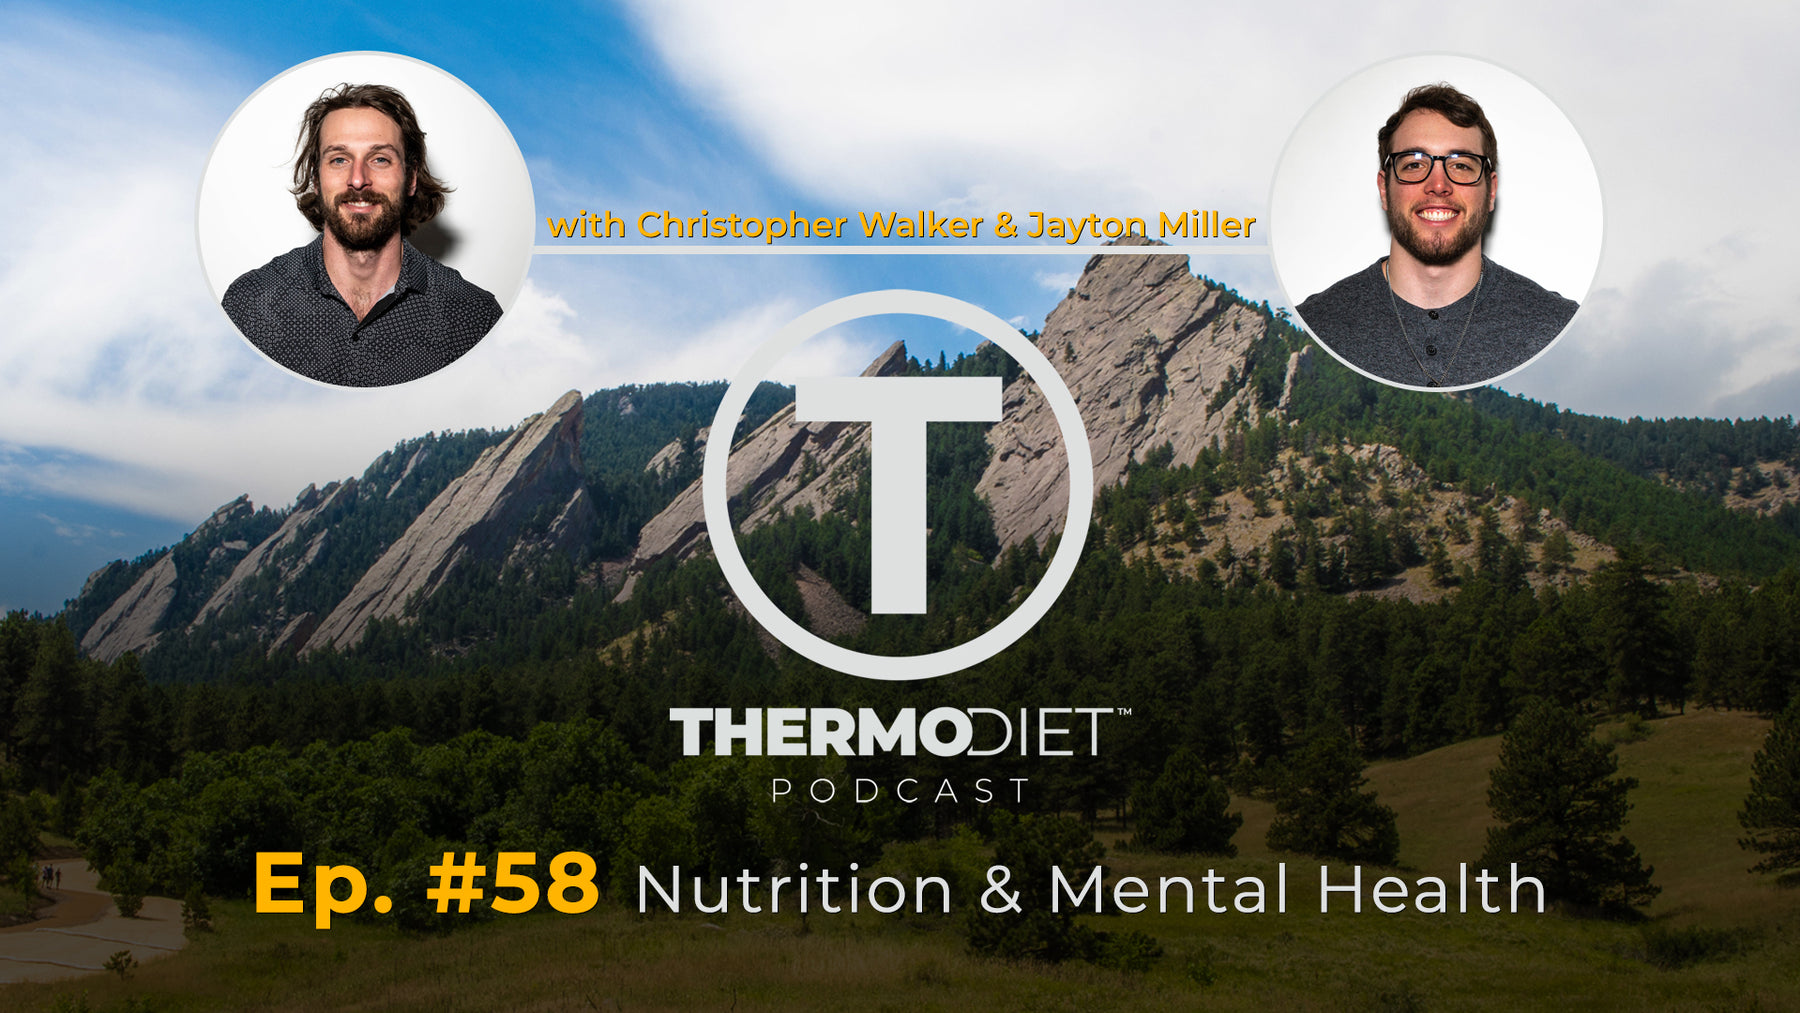 The Thermo Diet Podcast Episode 58 - Nutrition & Mental Health